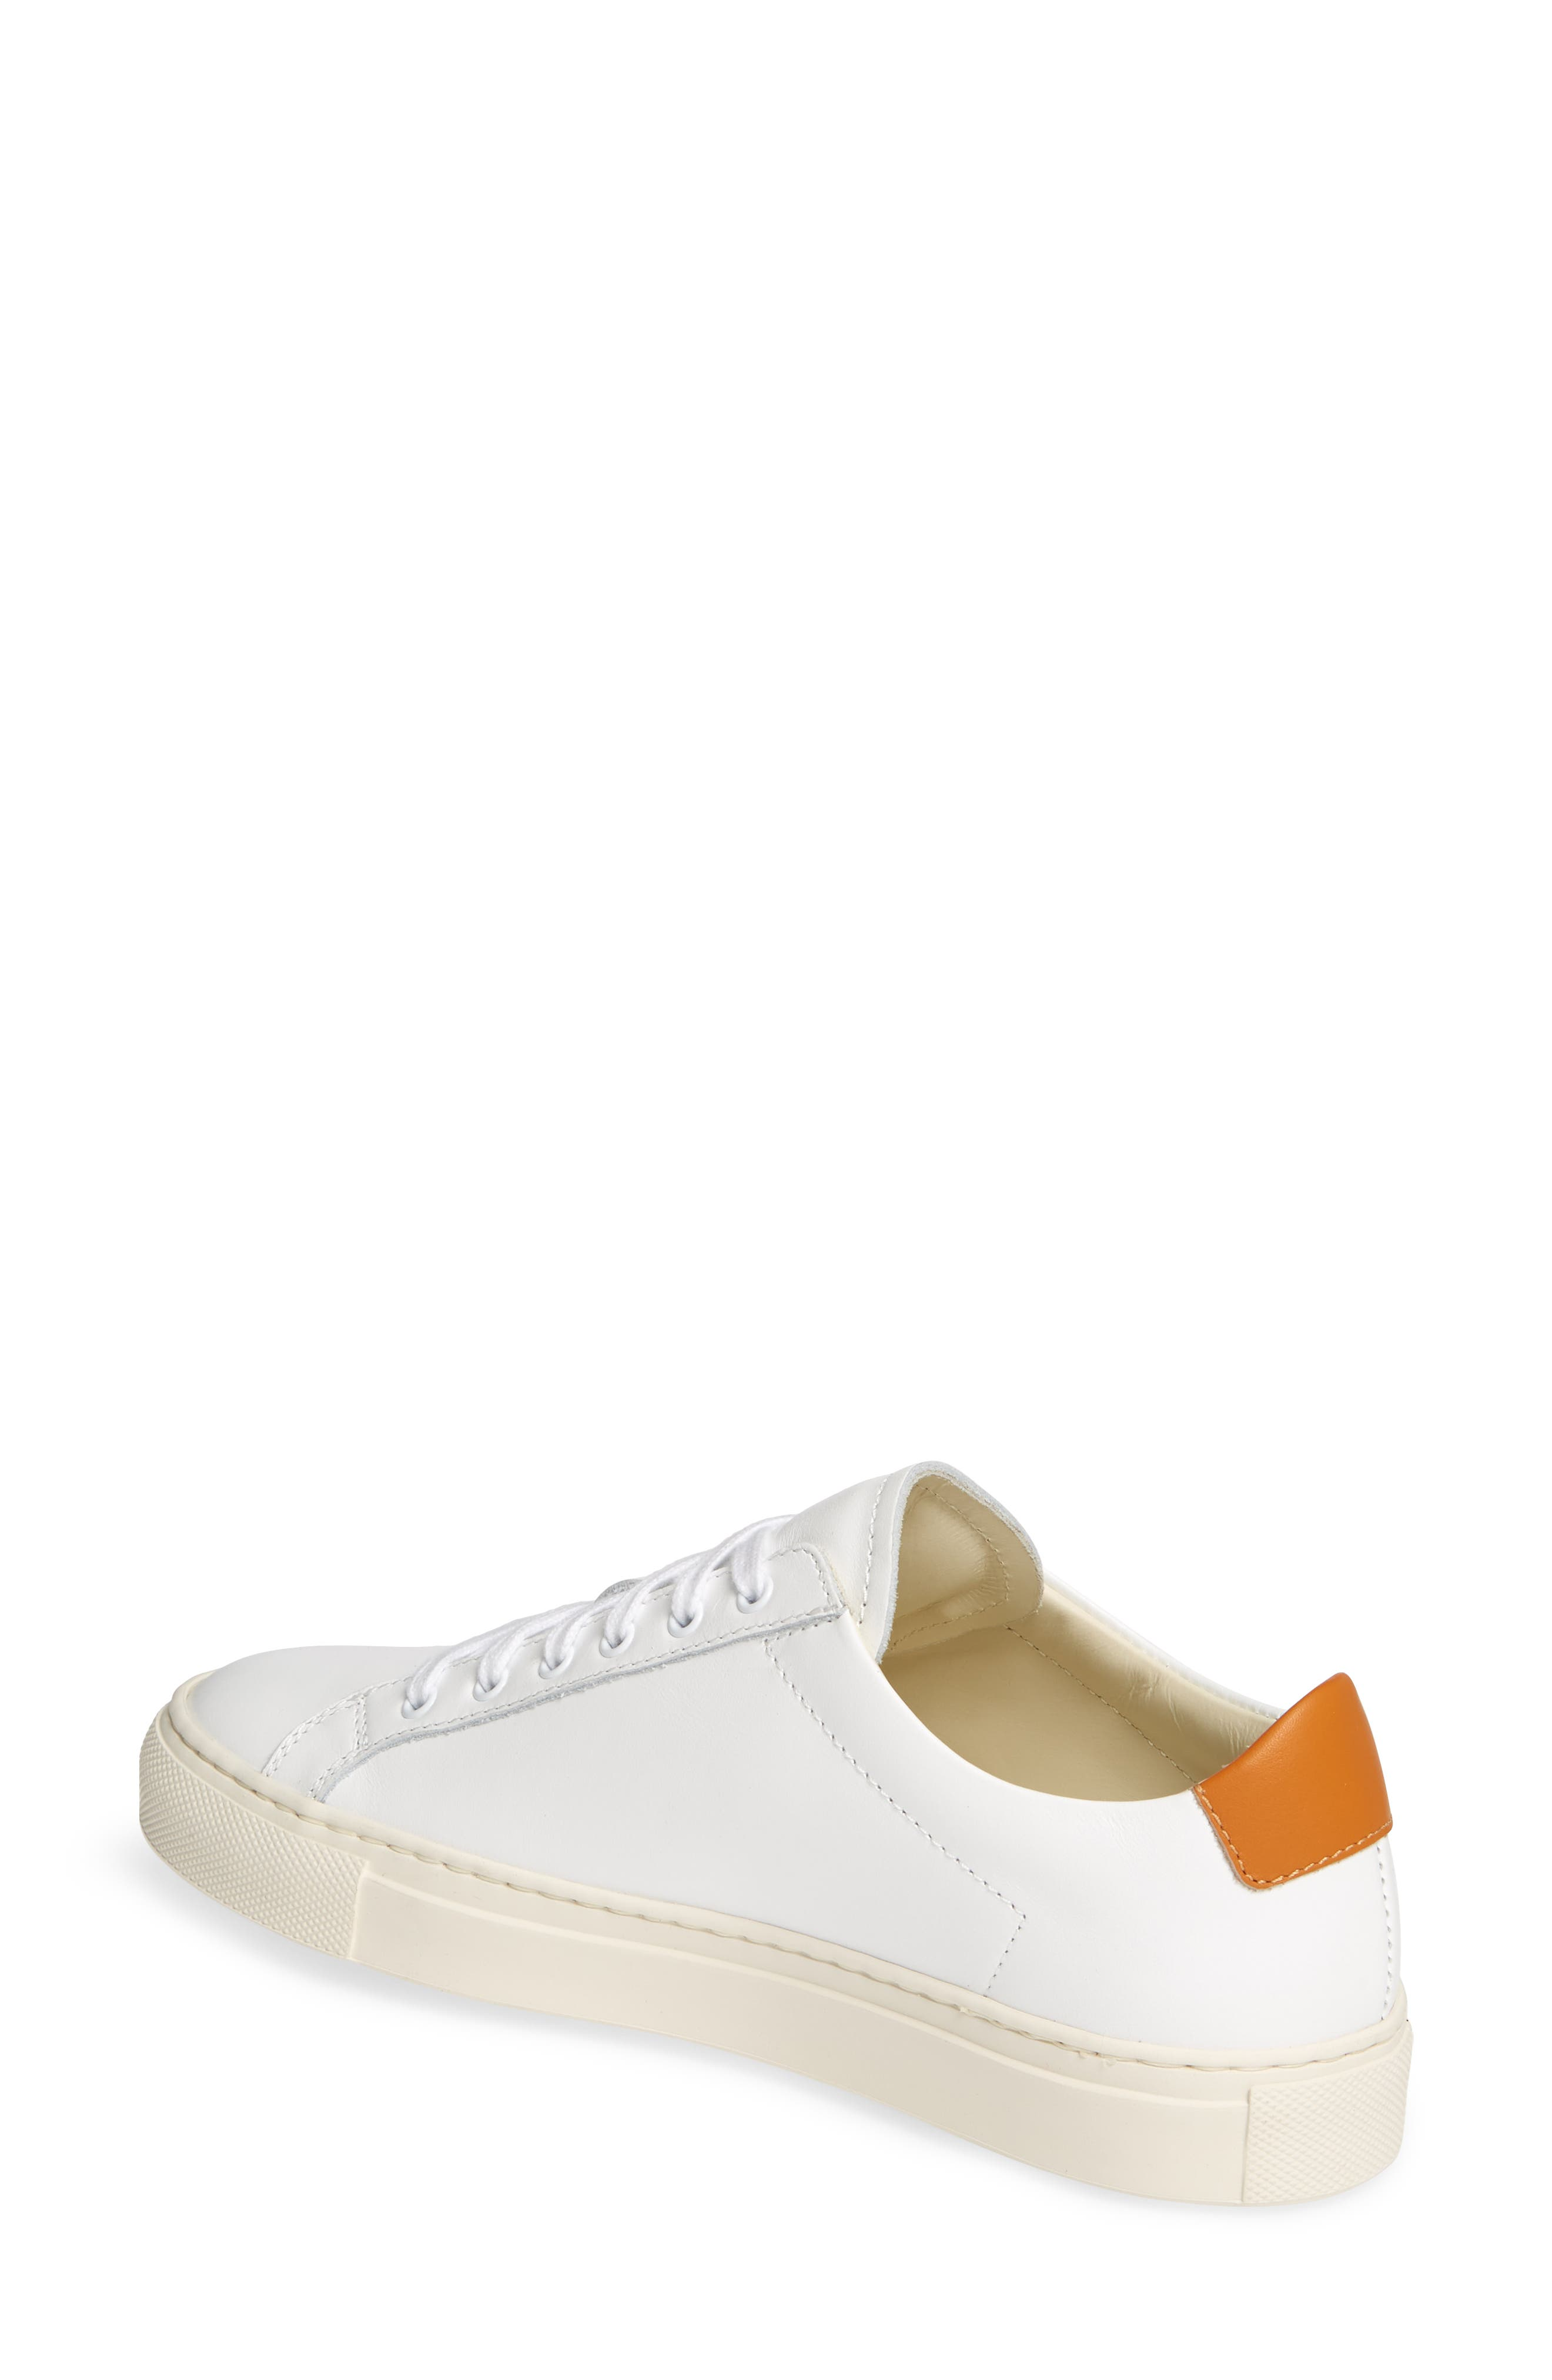 COMMON PROJECTS, Retro Low Top Sneaker, Alternate thumbnail 2, color, WHITE/ BROWN